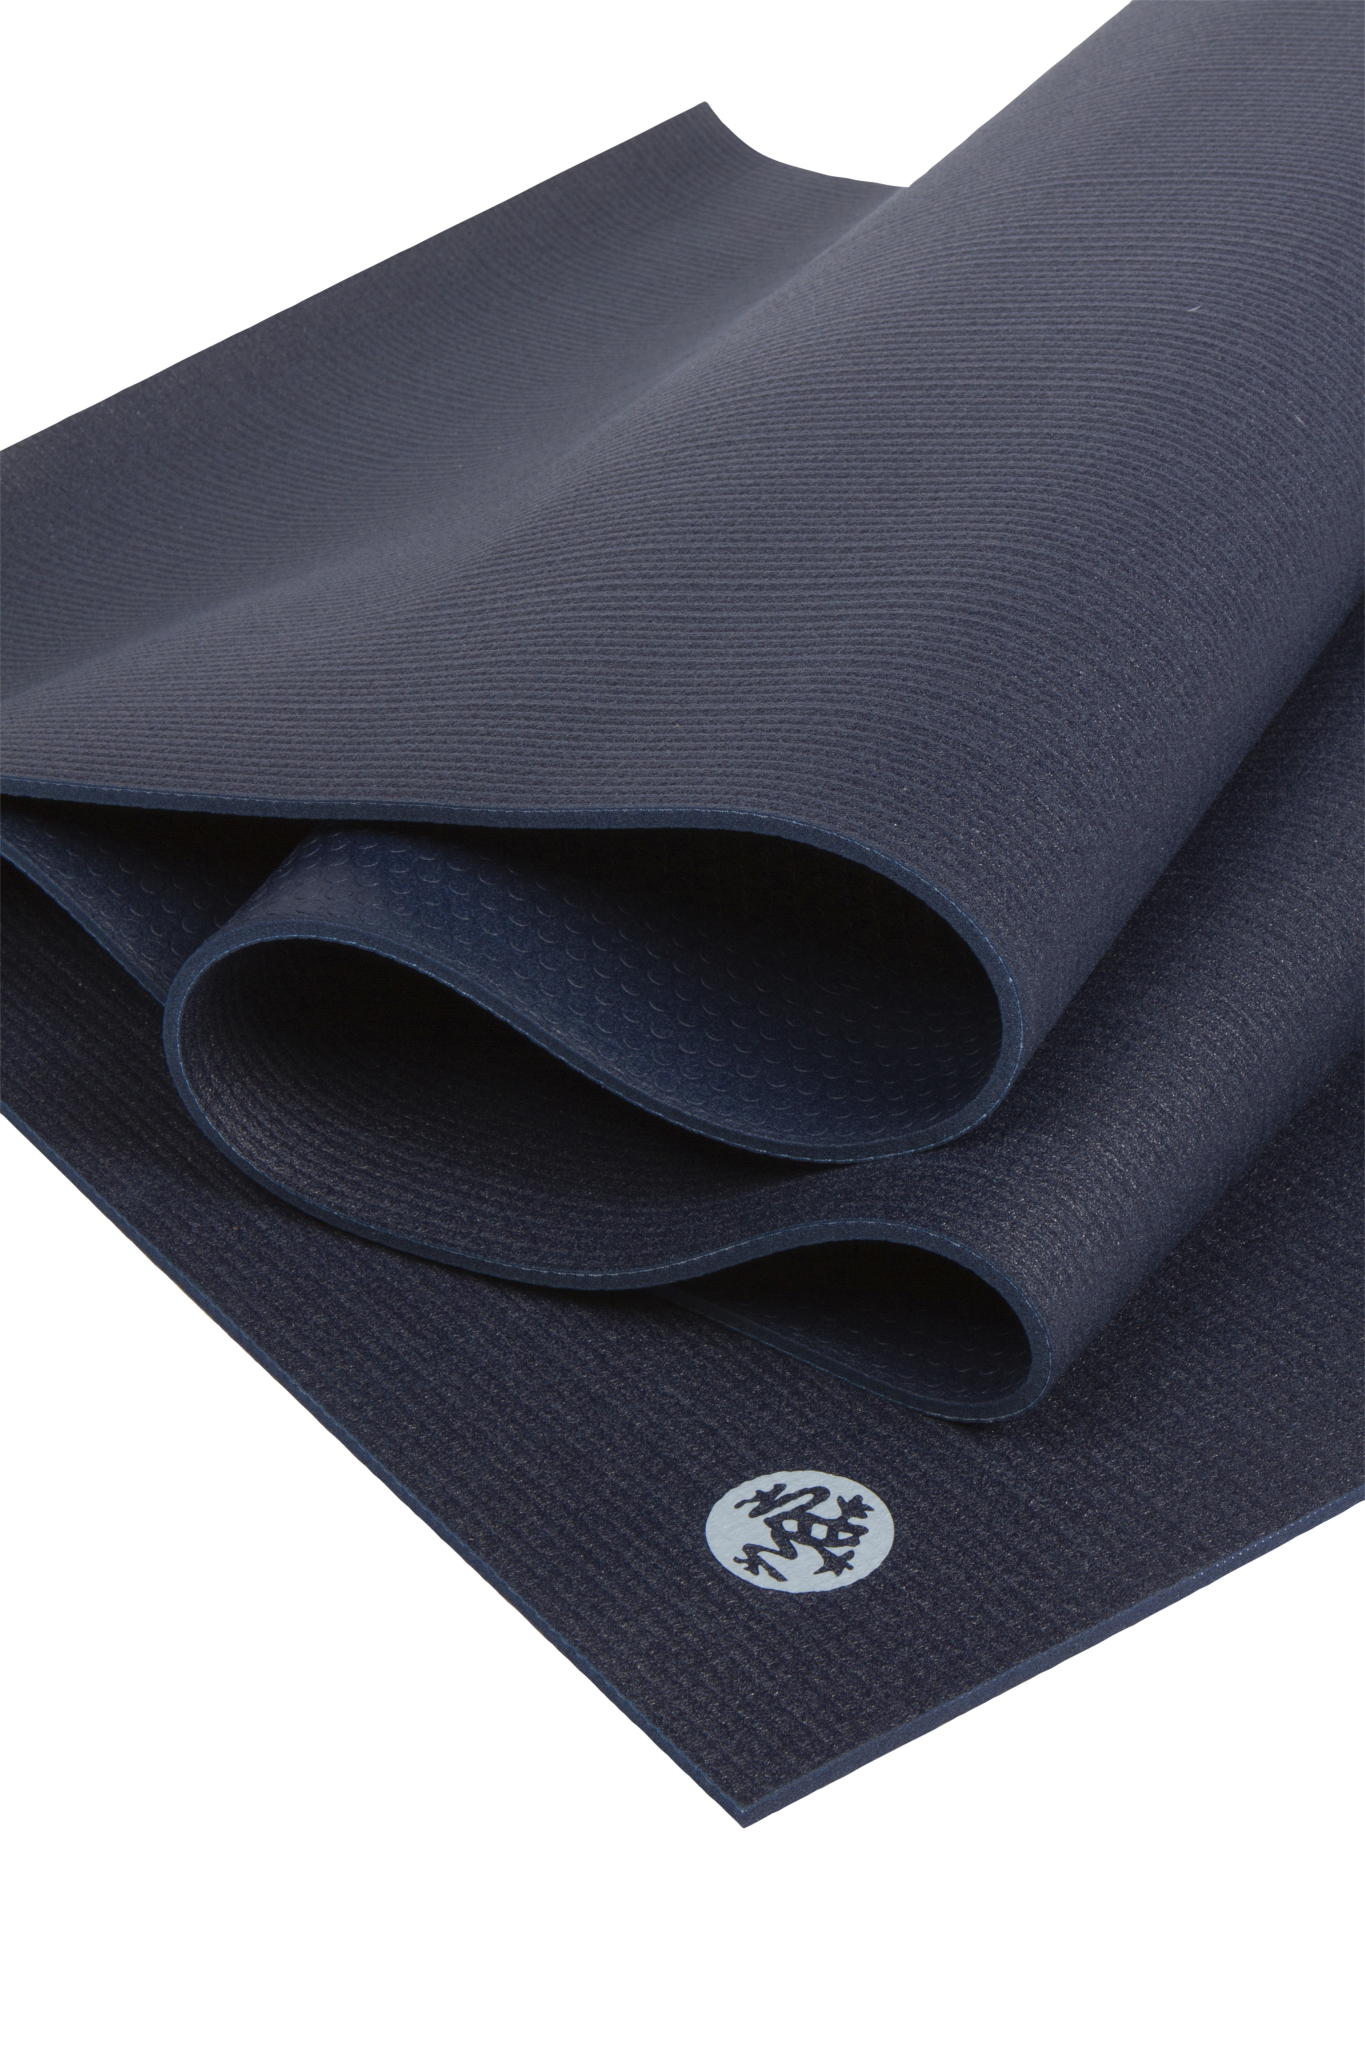 Коврик для йоги Manduka PROlite Mat 4,5мм (2 кг, 180 см, 4.5 мм, темно-синий, 60см (Midnight))